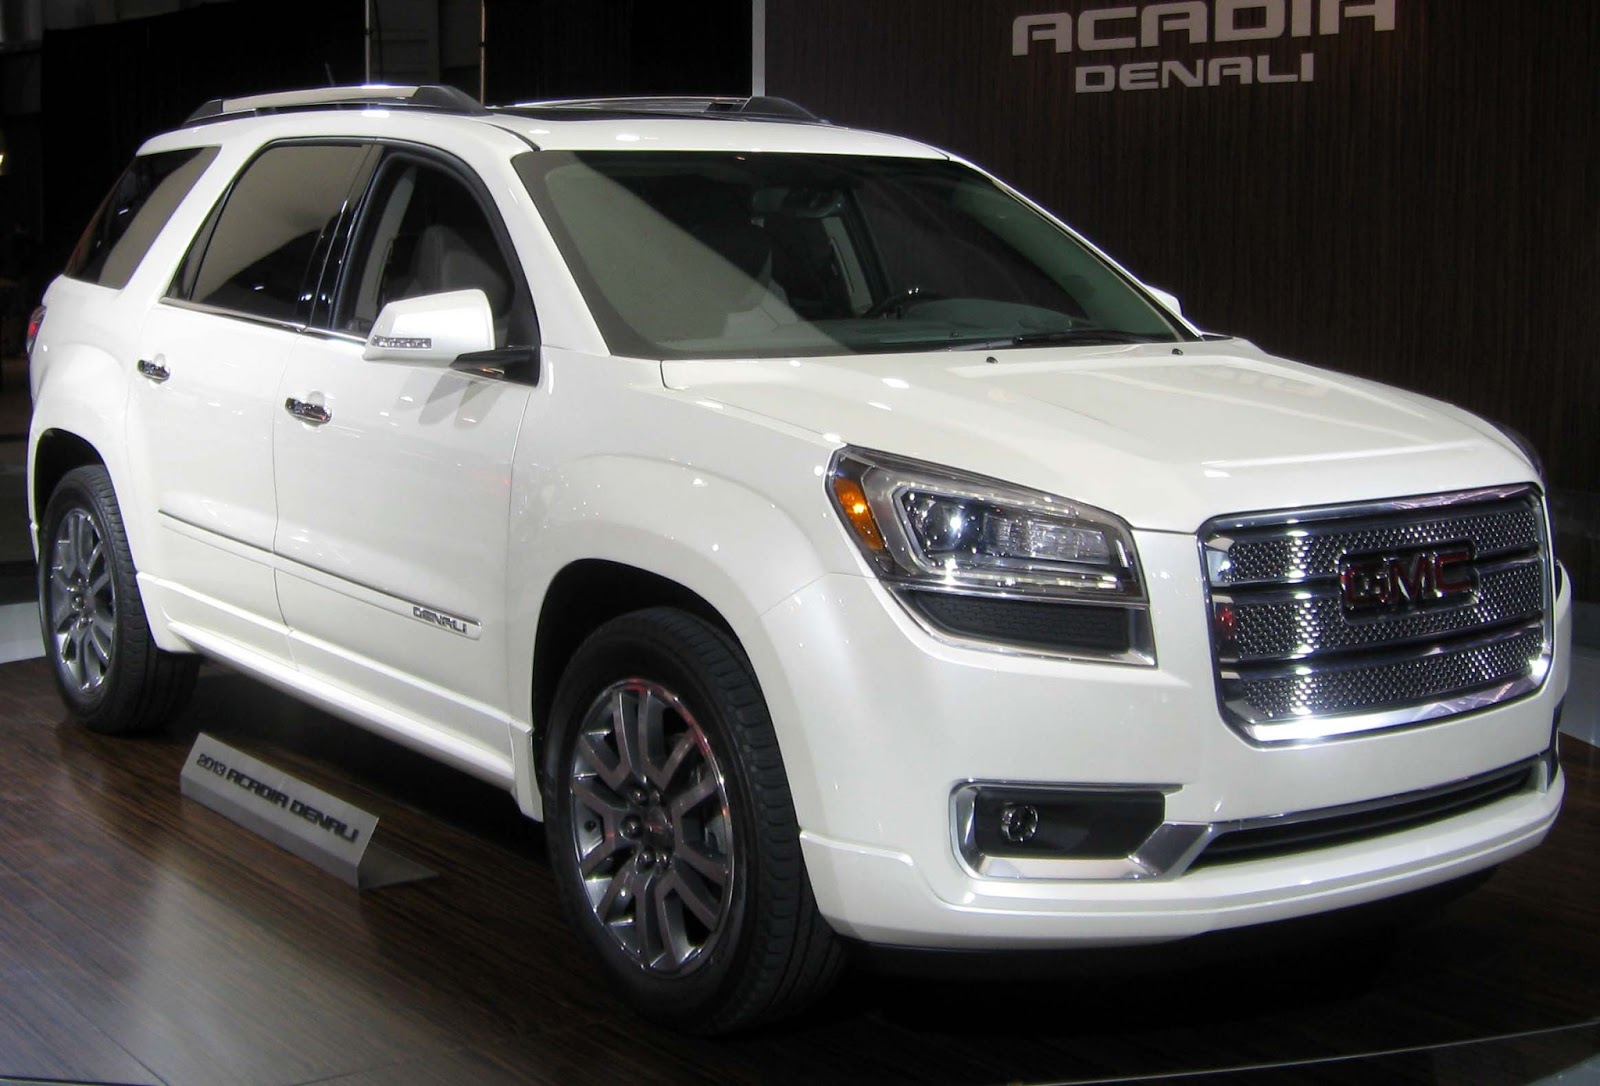 latest cars models gmc acadia 2013. Black Bedroom Furniture Sets. Home Design Ideas